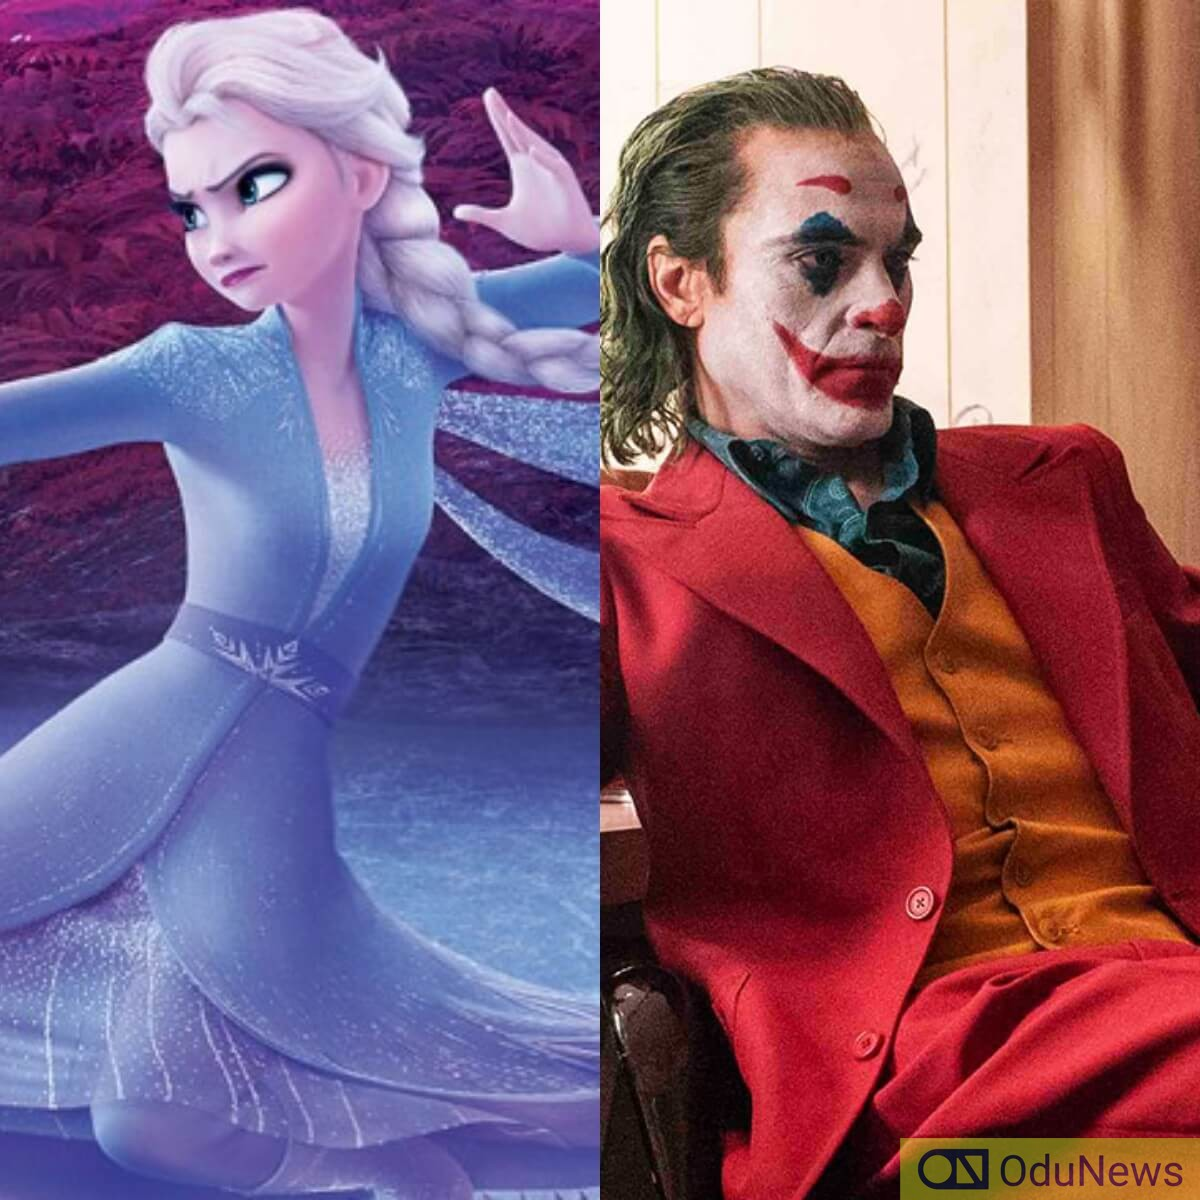 Frozen 2 & Joker have both picked up nominations at the CAS Awards